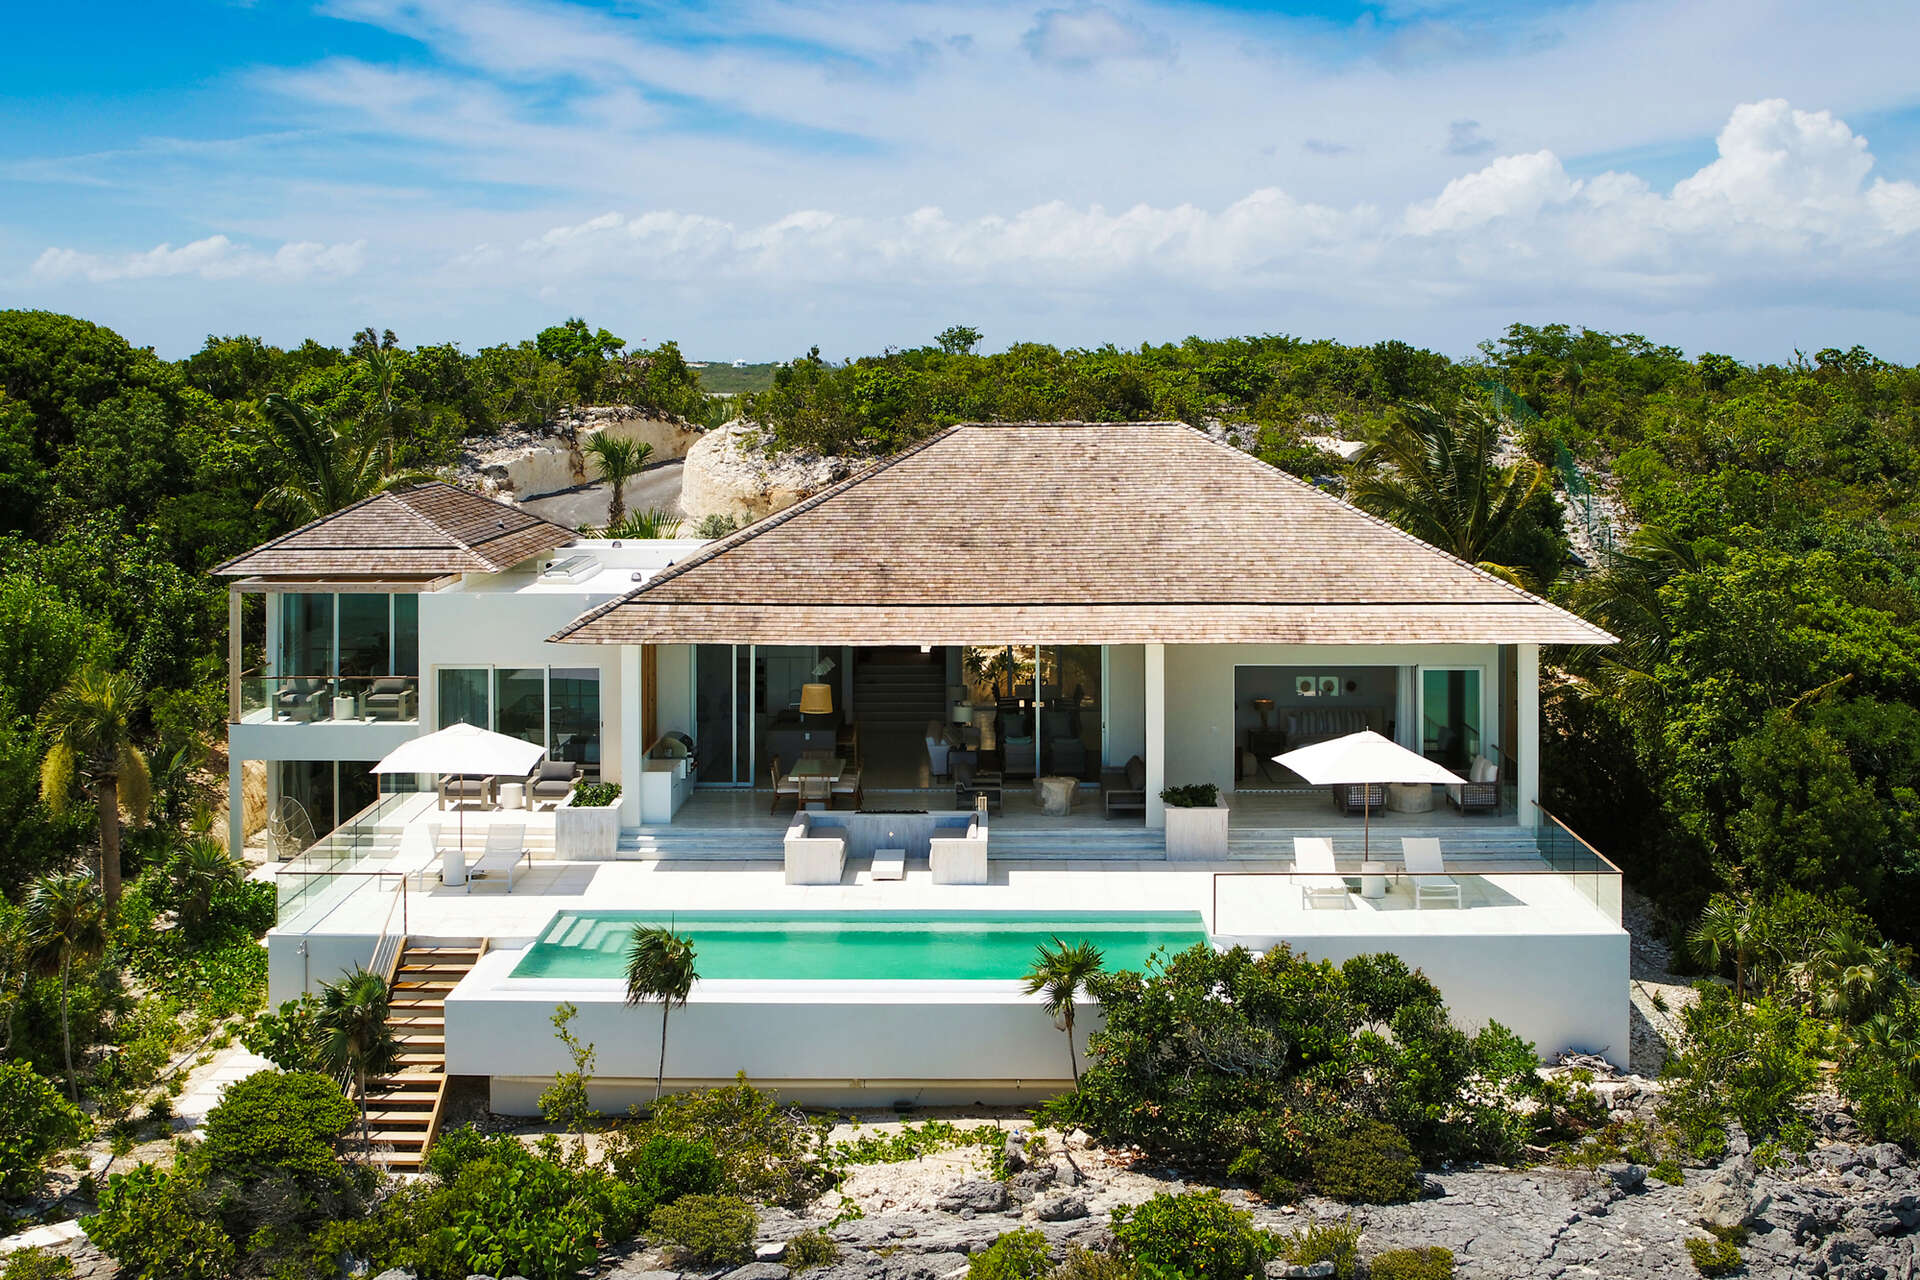 Luxury villa rentals caribbean - Turks and caicos - Providenciales - Turtle tail - Bristol Bliss - Image 1/34